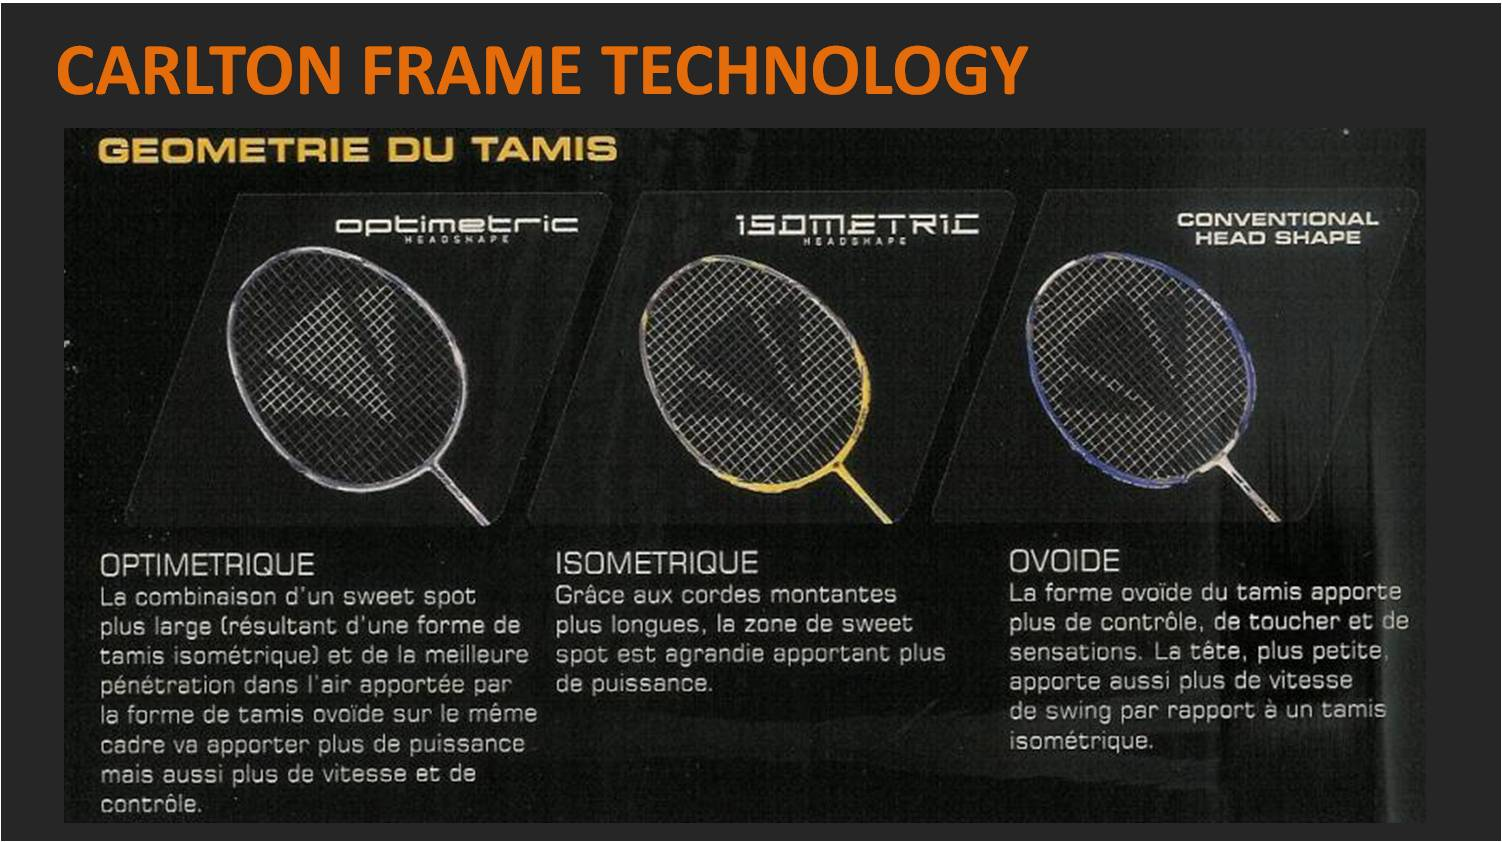 CARLTON_FRAME_TECHNOLOGY